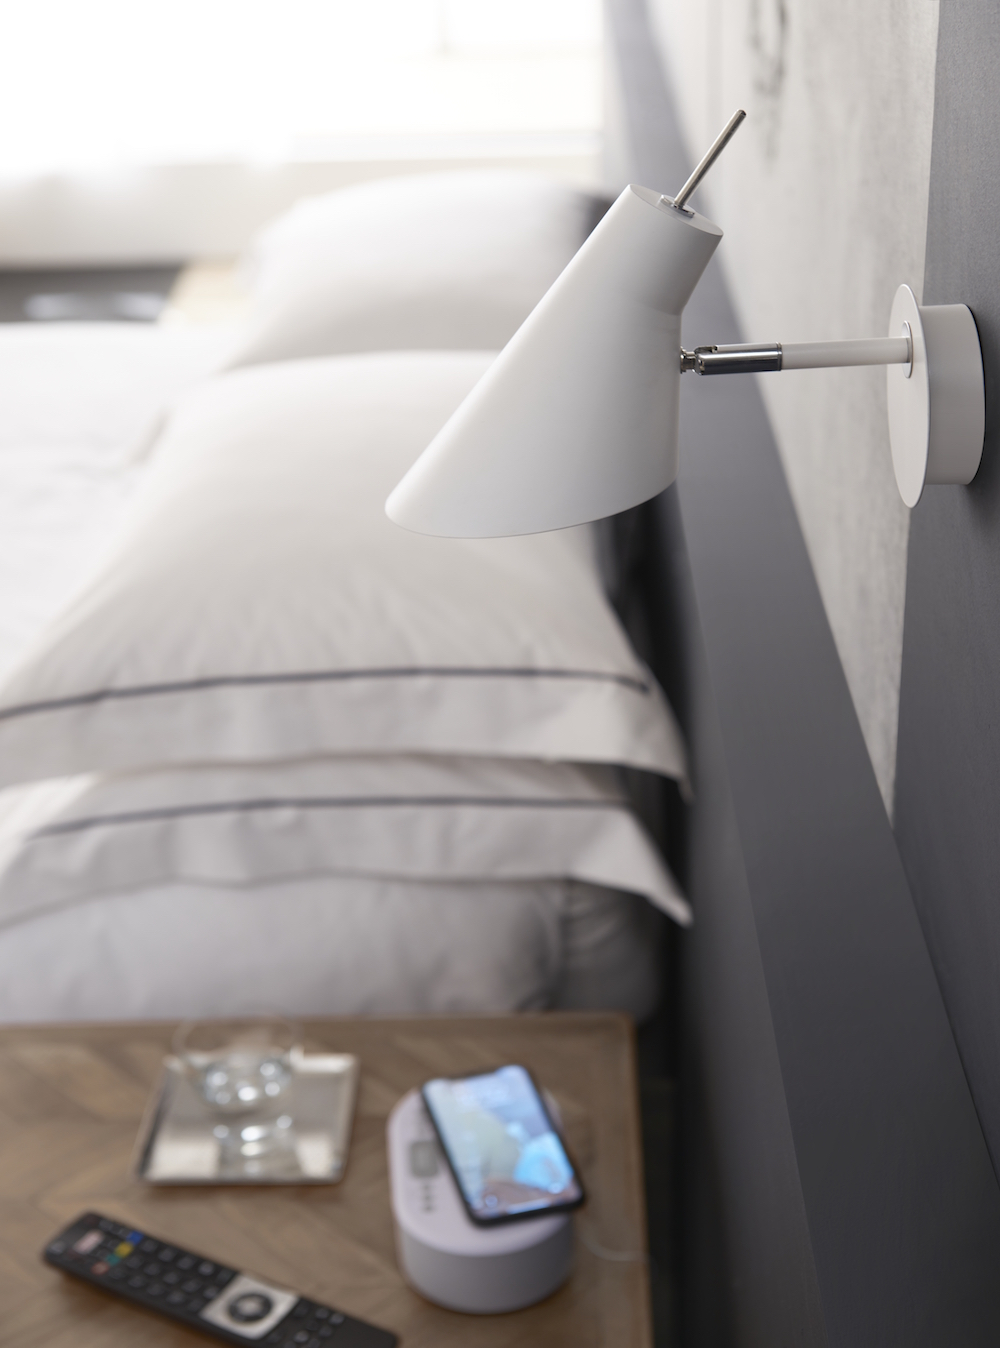 Image of phone at the side of the bed